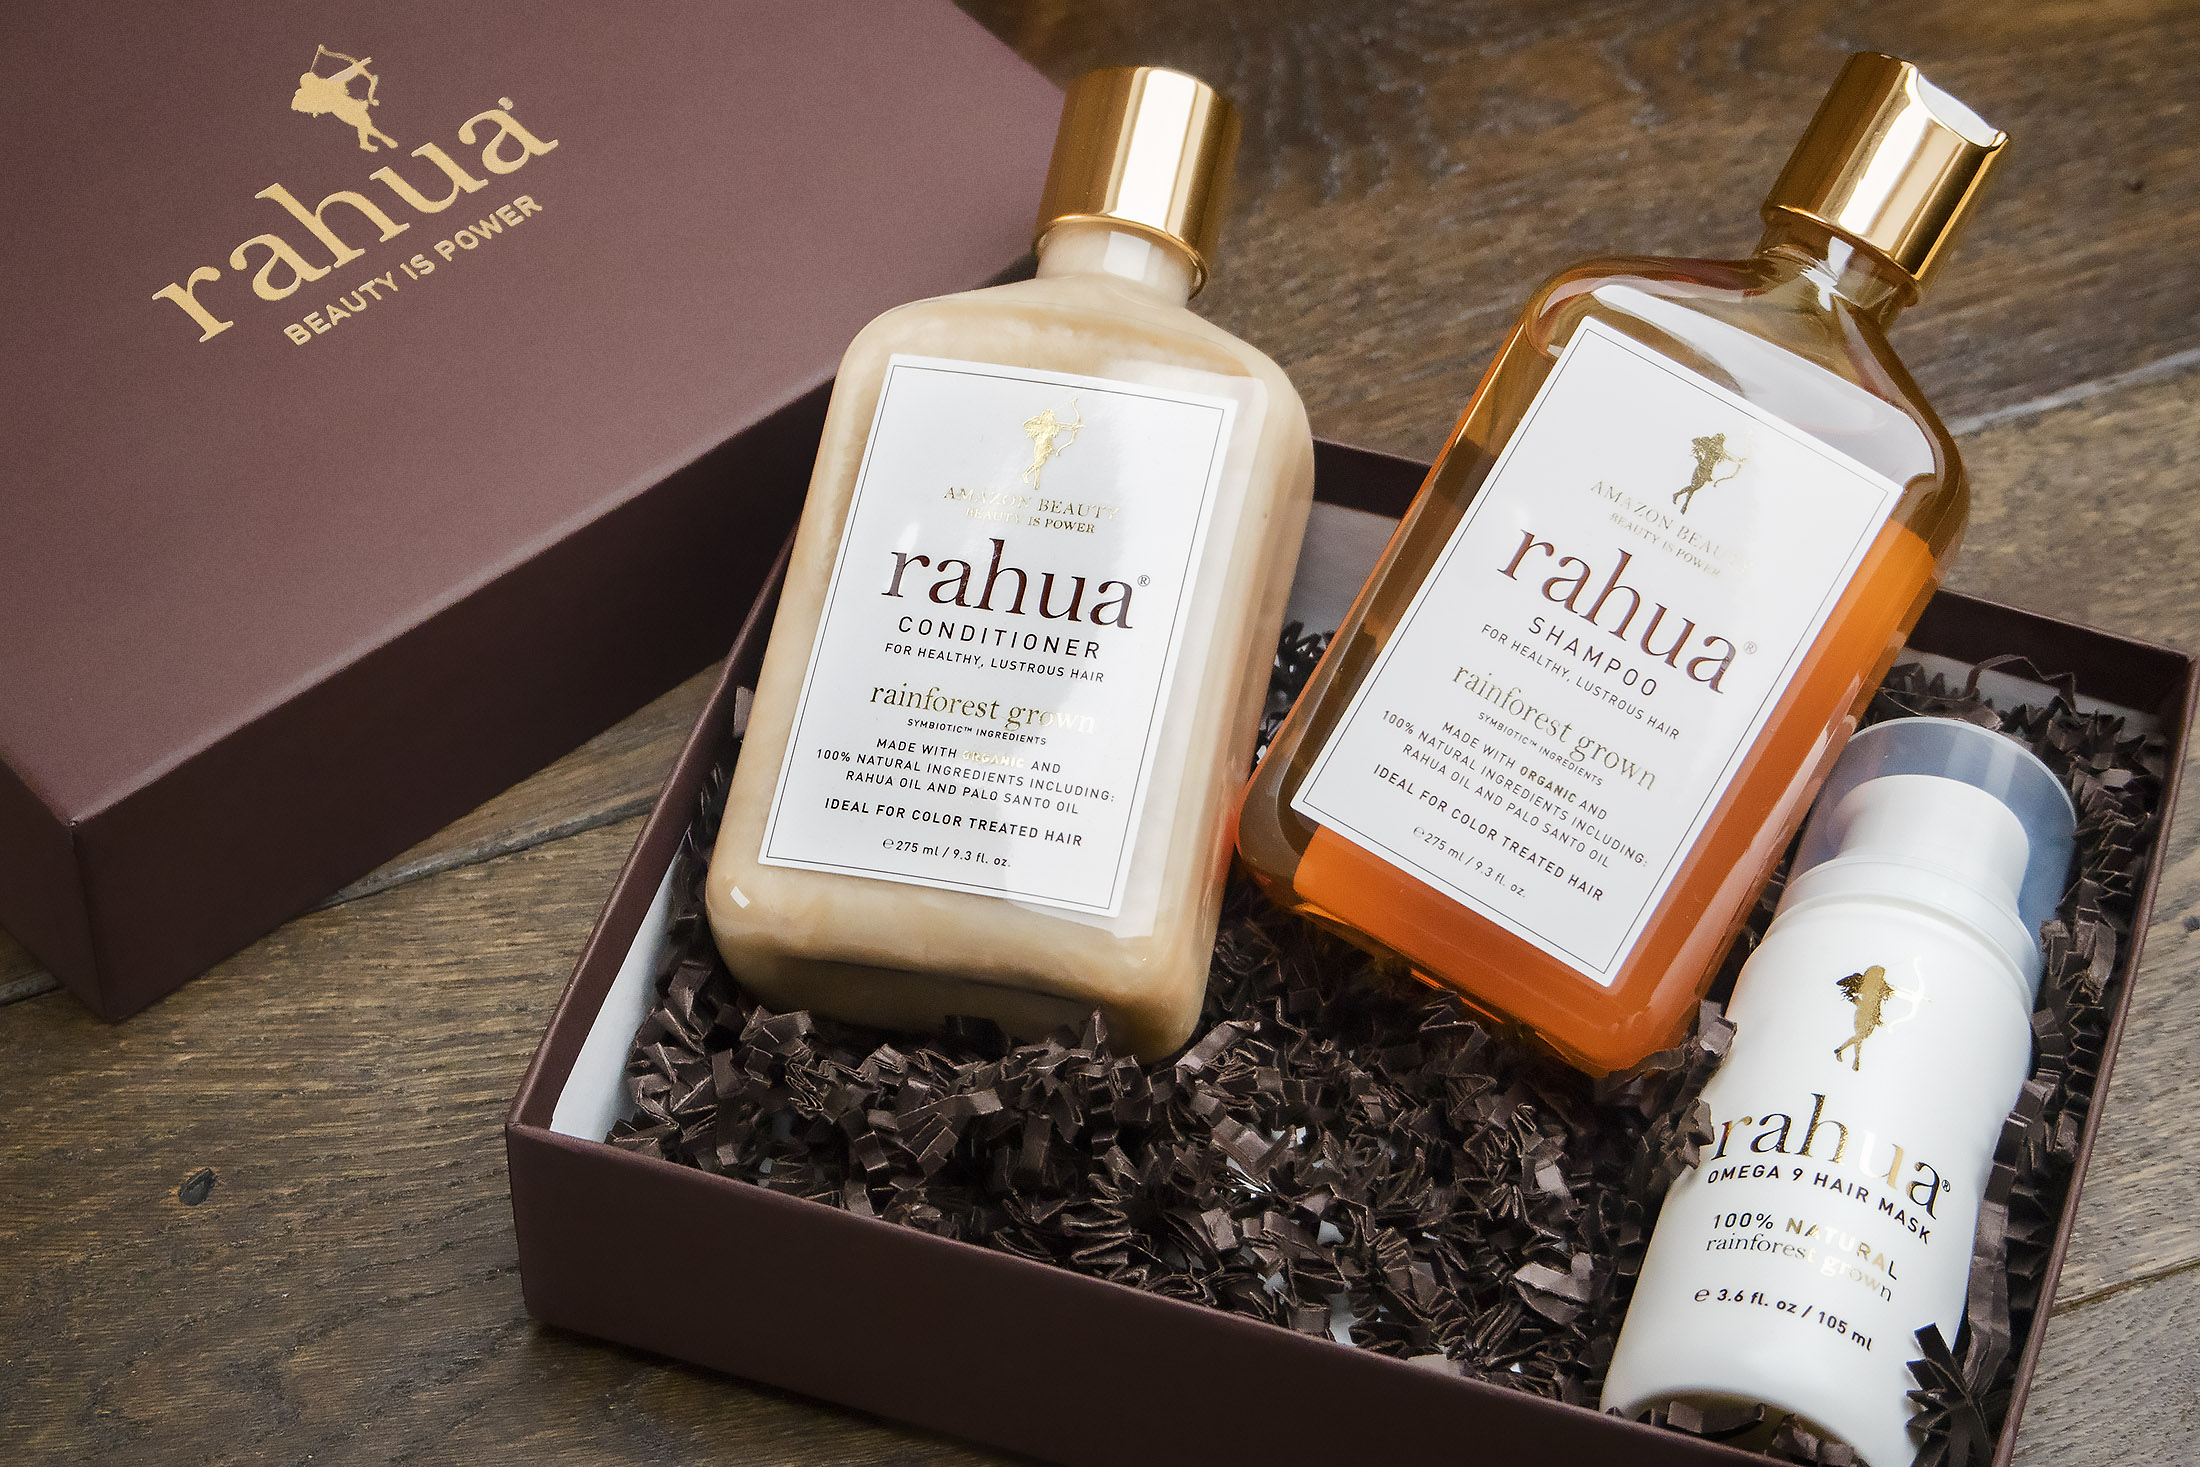 From deep within the Amazon rainforest comes Rahua, an all-natural line infused with the purest and rarest ingredients. The restorative oils found in the rare rahua nut not only rejuvenate and repair the most damaged hair but they also fortify fine weakened hair adding volume and fullness. Rahua is completely free of synthetics, parabens, and sulfates and embodies the elegance of nature and embodies these three values:    Purity • Elegance • Health